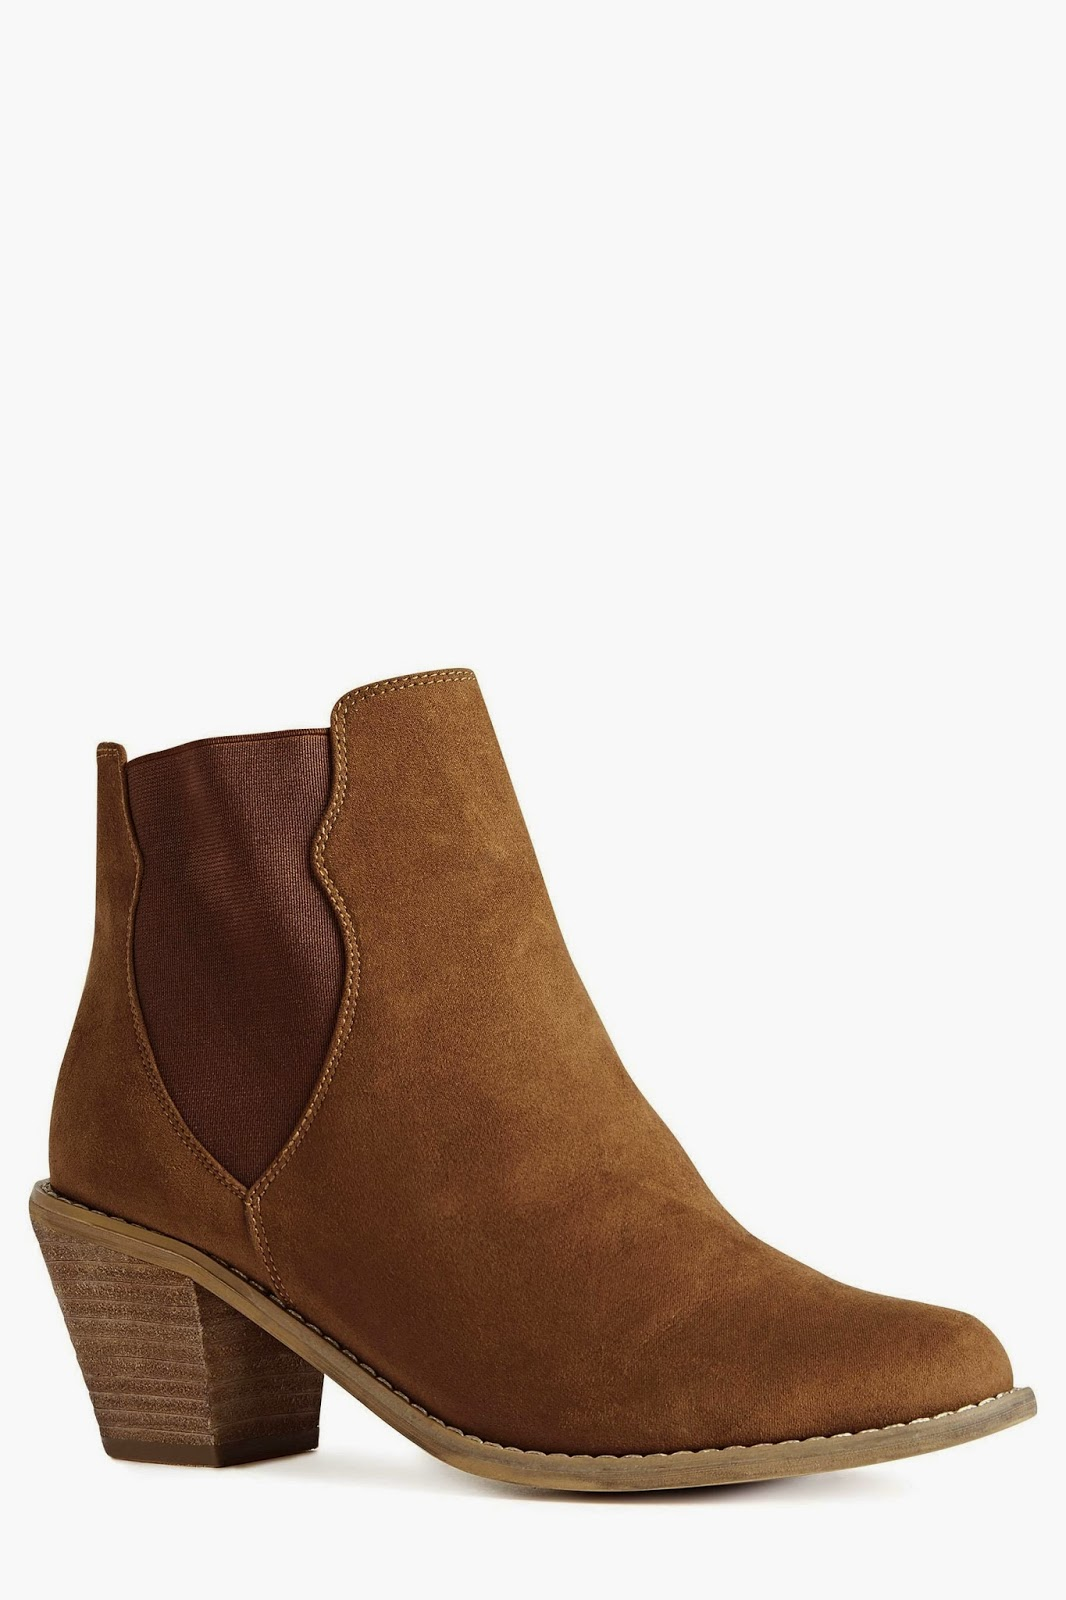 next tan suede ankle boot, acne boot replica,